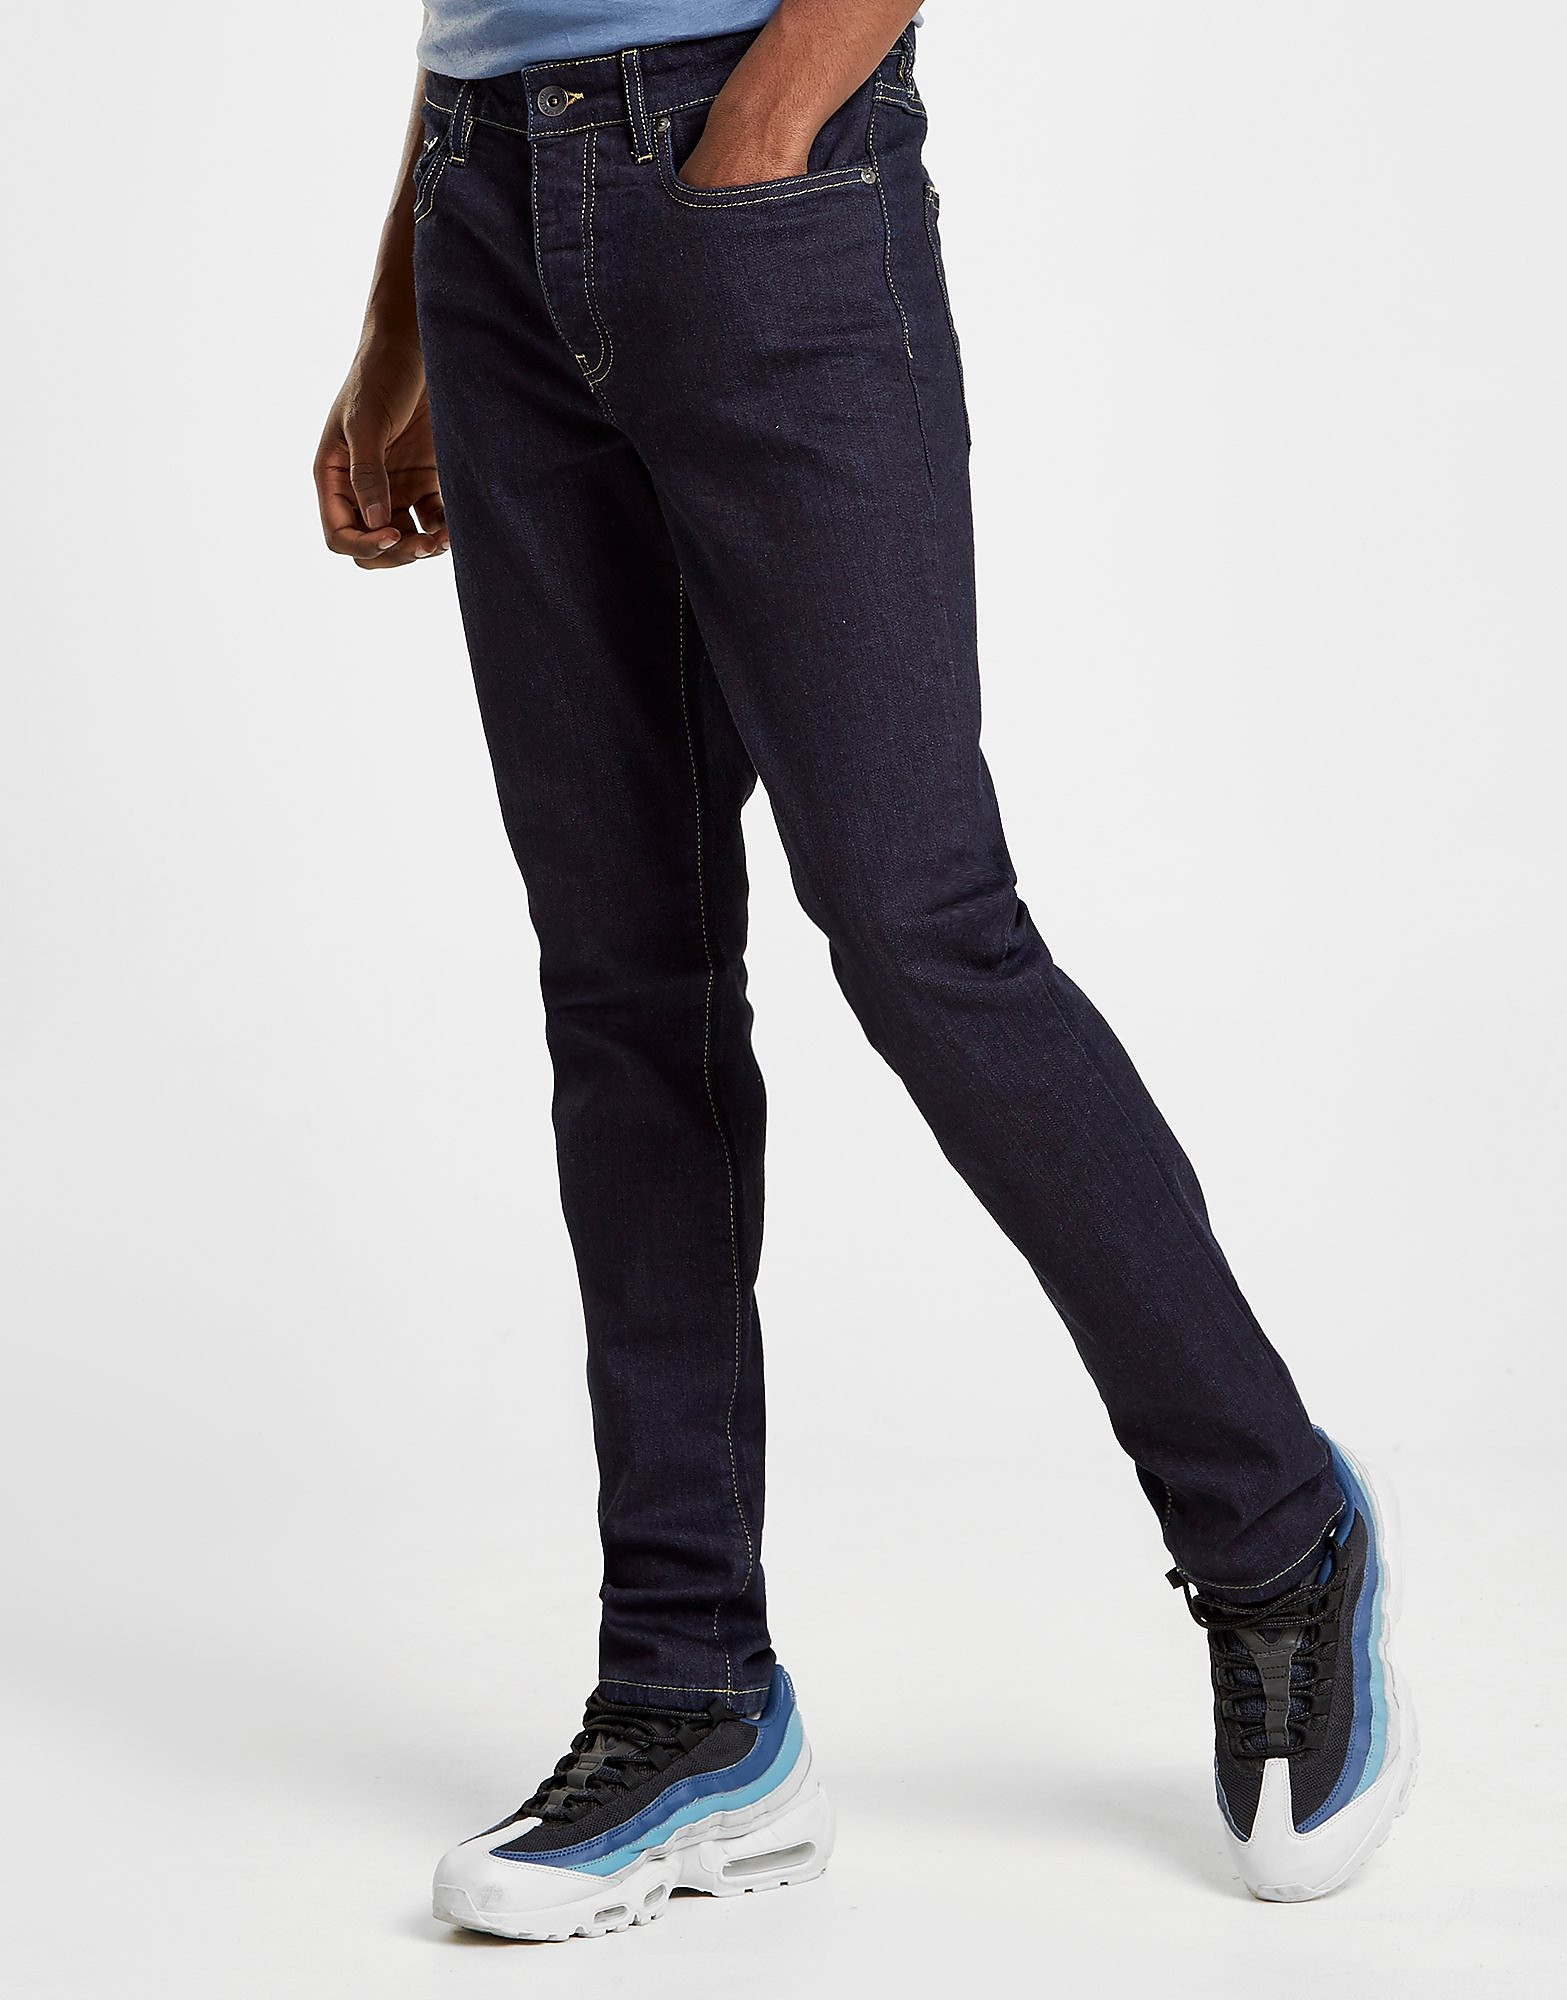 Lyle & Scott 5 Pocket Slim Jeans